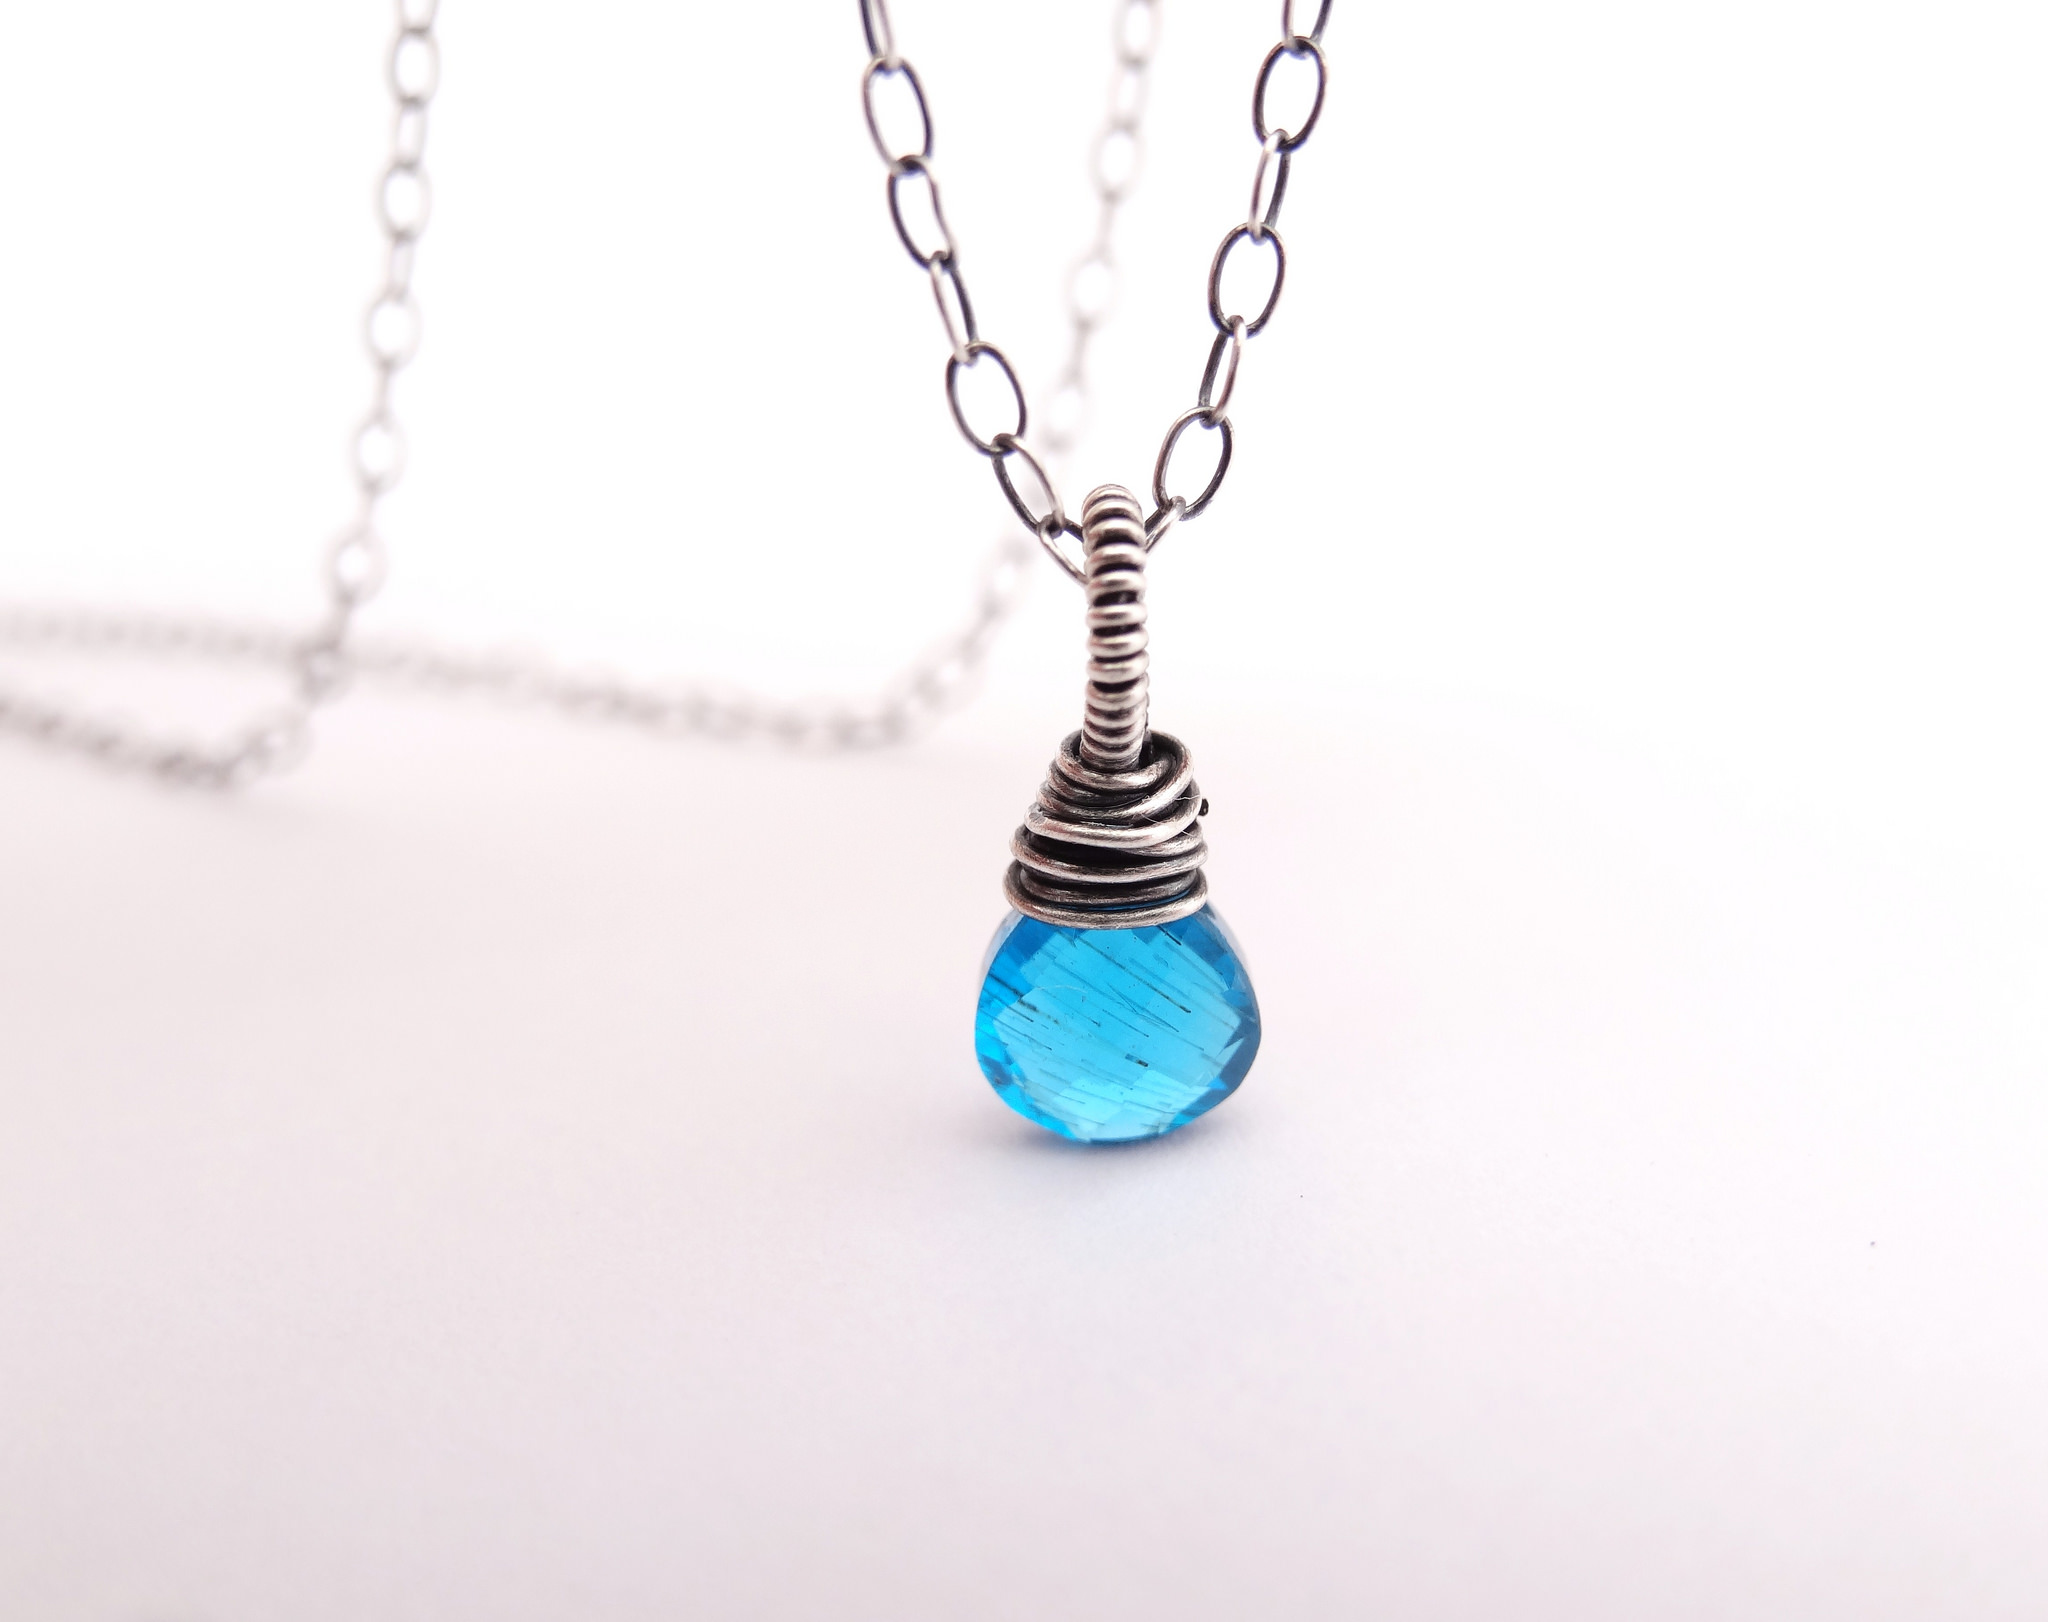 Simple Minimalist Necklace With Blue Pendant